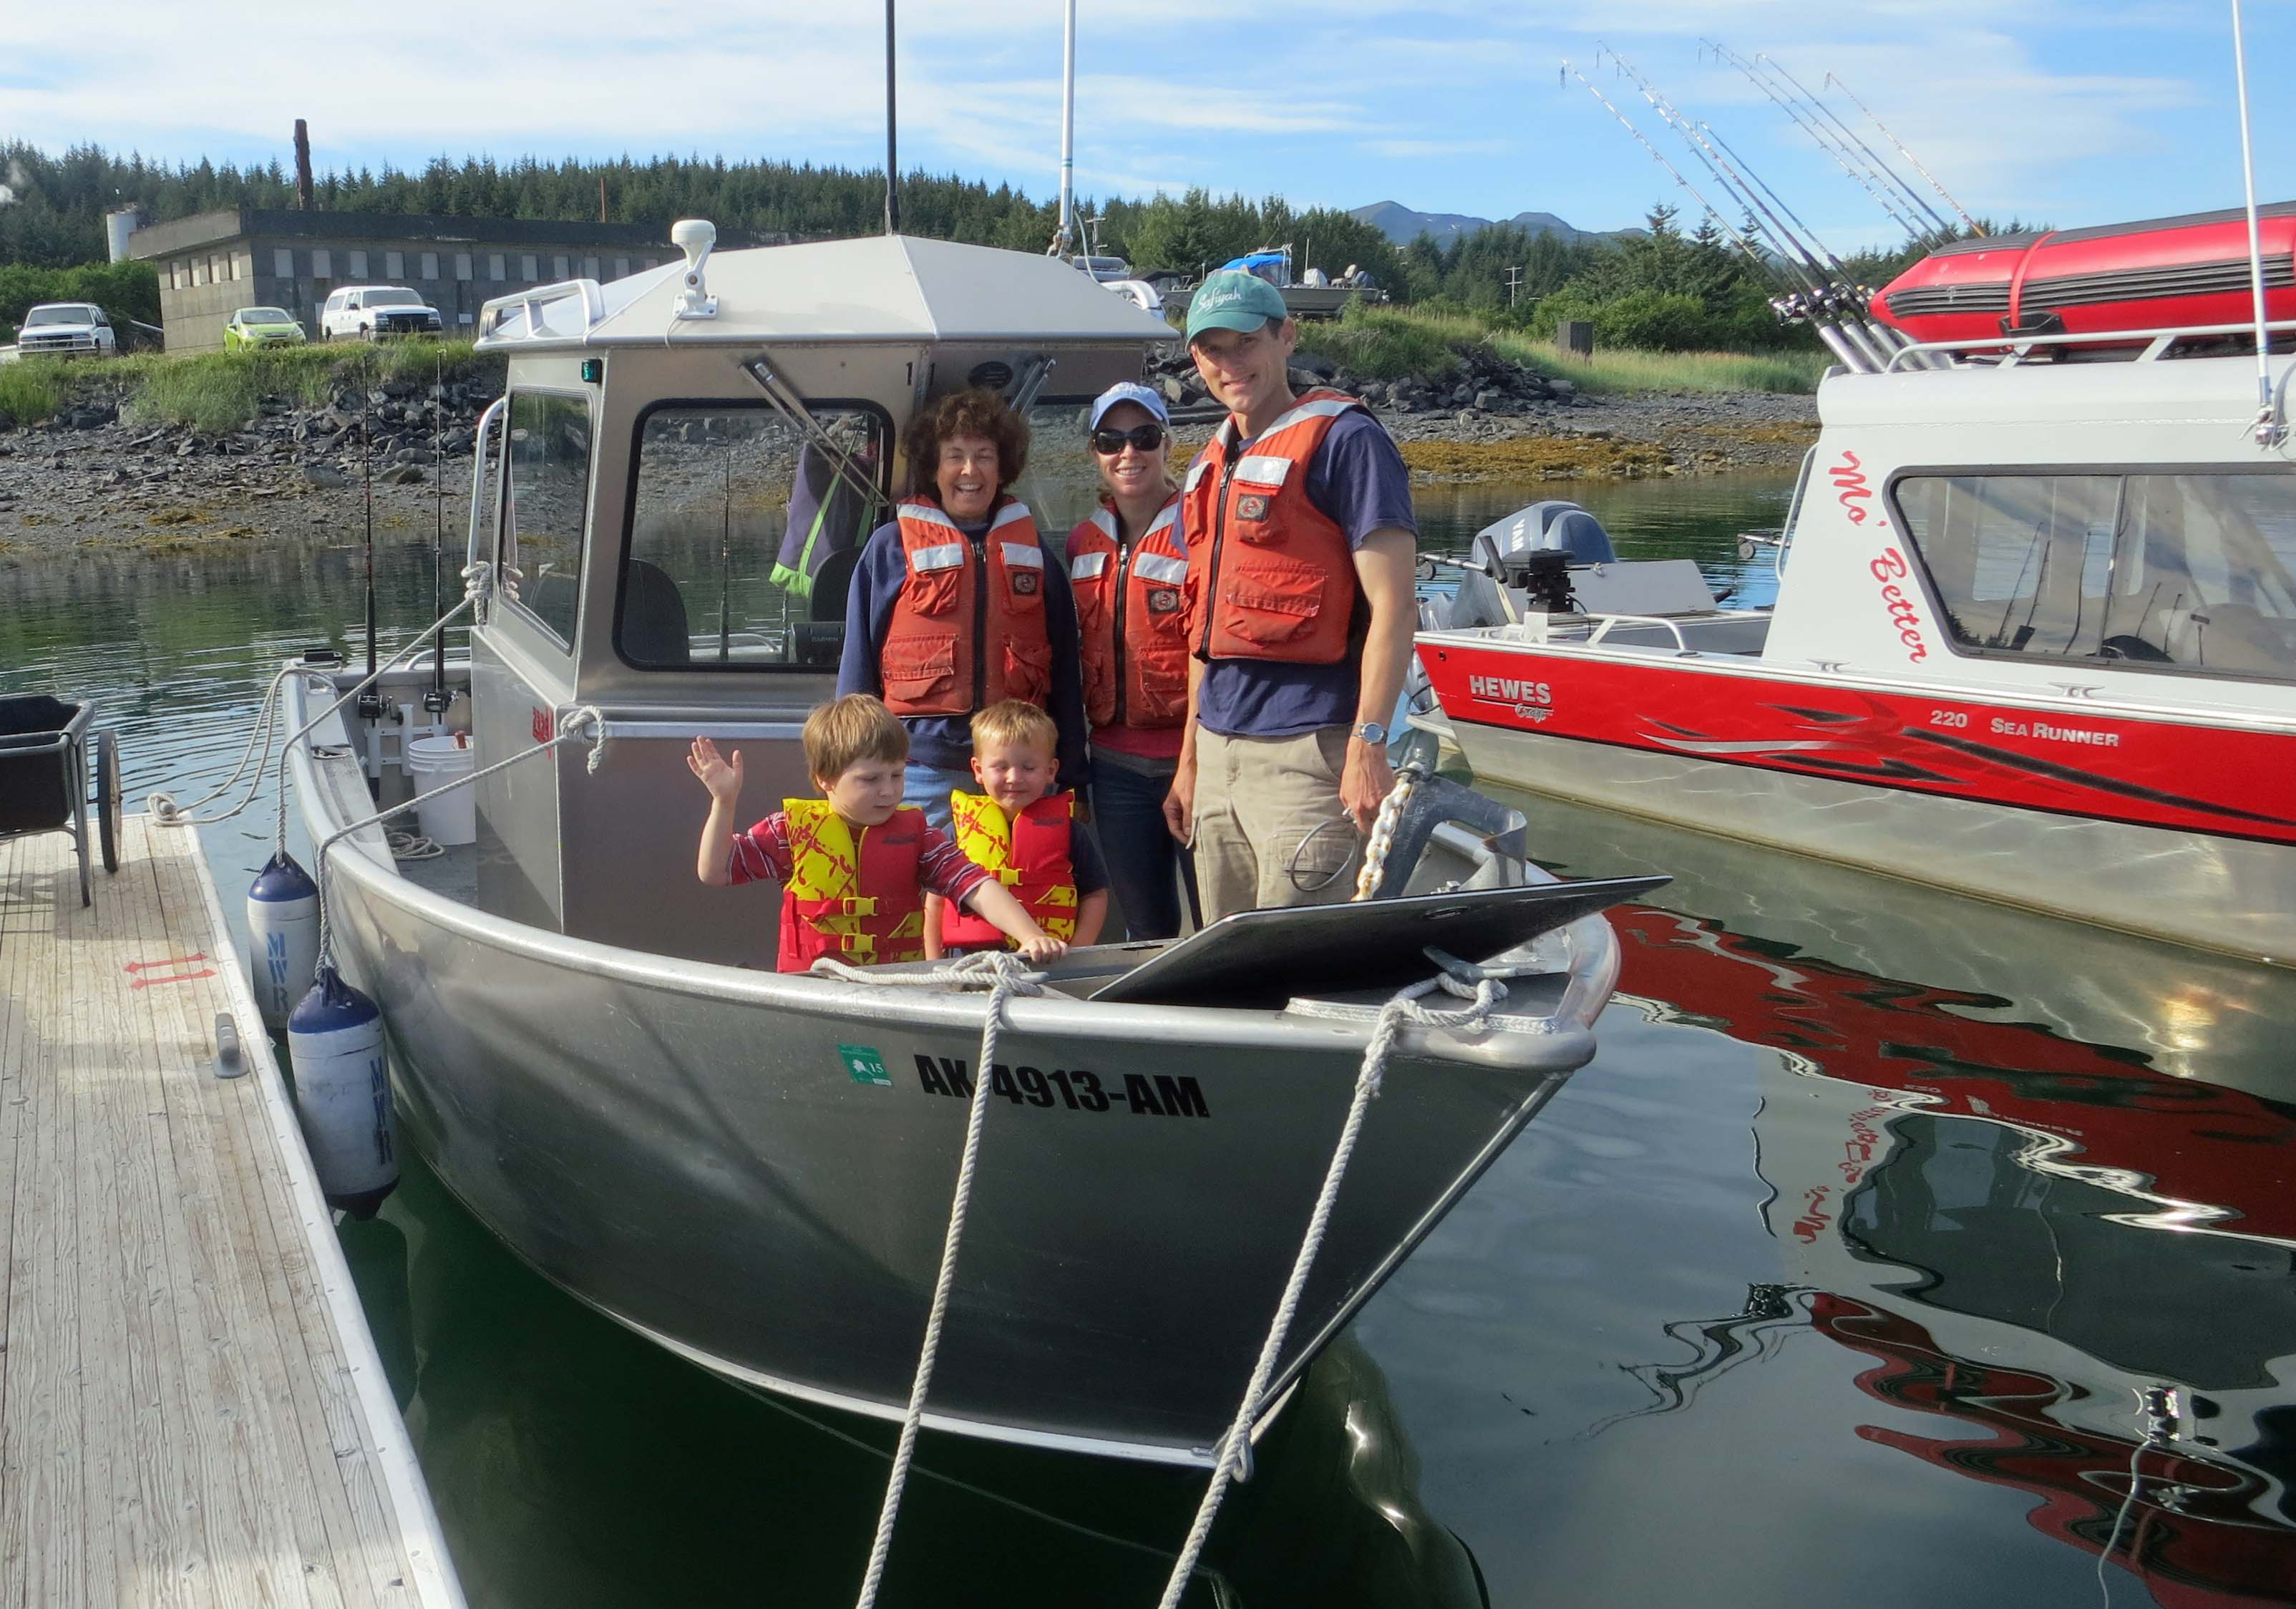 Our brave crew prepares to head out to sea on our Halibut fishing expedition. Connor, Chris and Tony are in the first row. Peggy and Cammie are in the second row.